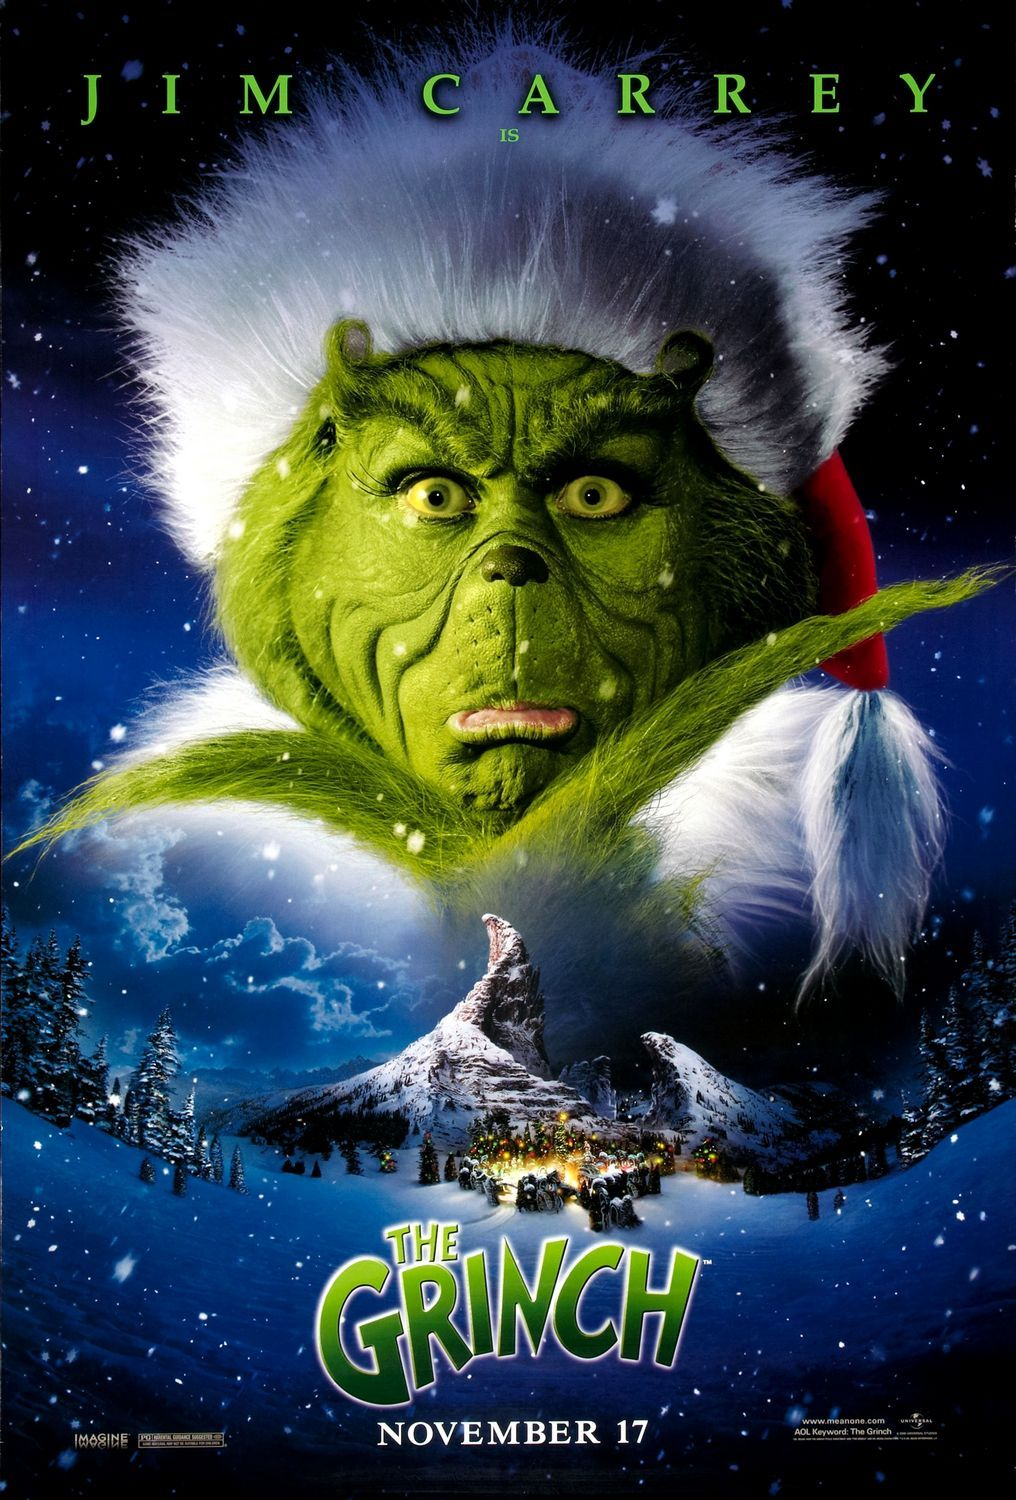 How The Grinch Stole Christmas 2000 A Creature Is Intent On Stealing Christmas The Grinch Movie Christmas Movies Grinch Stole Christmas